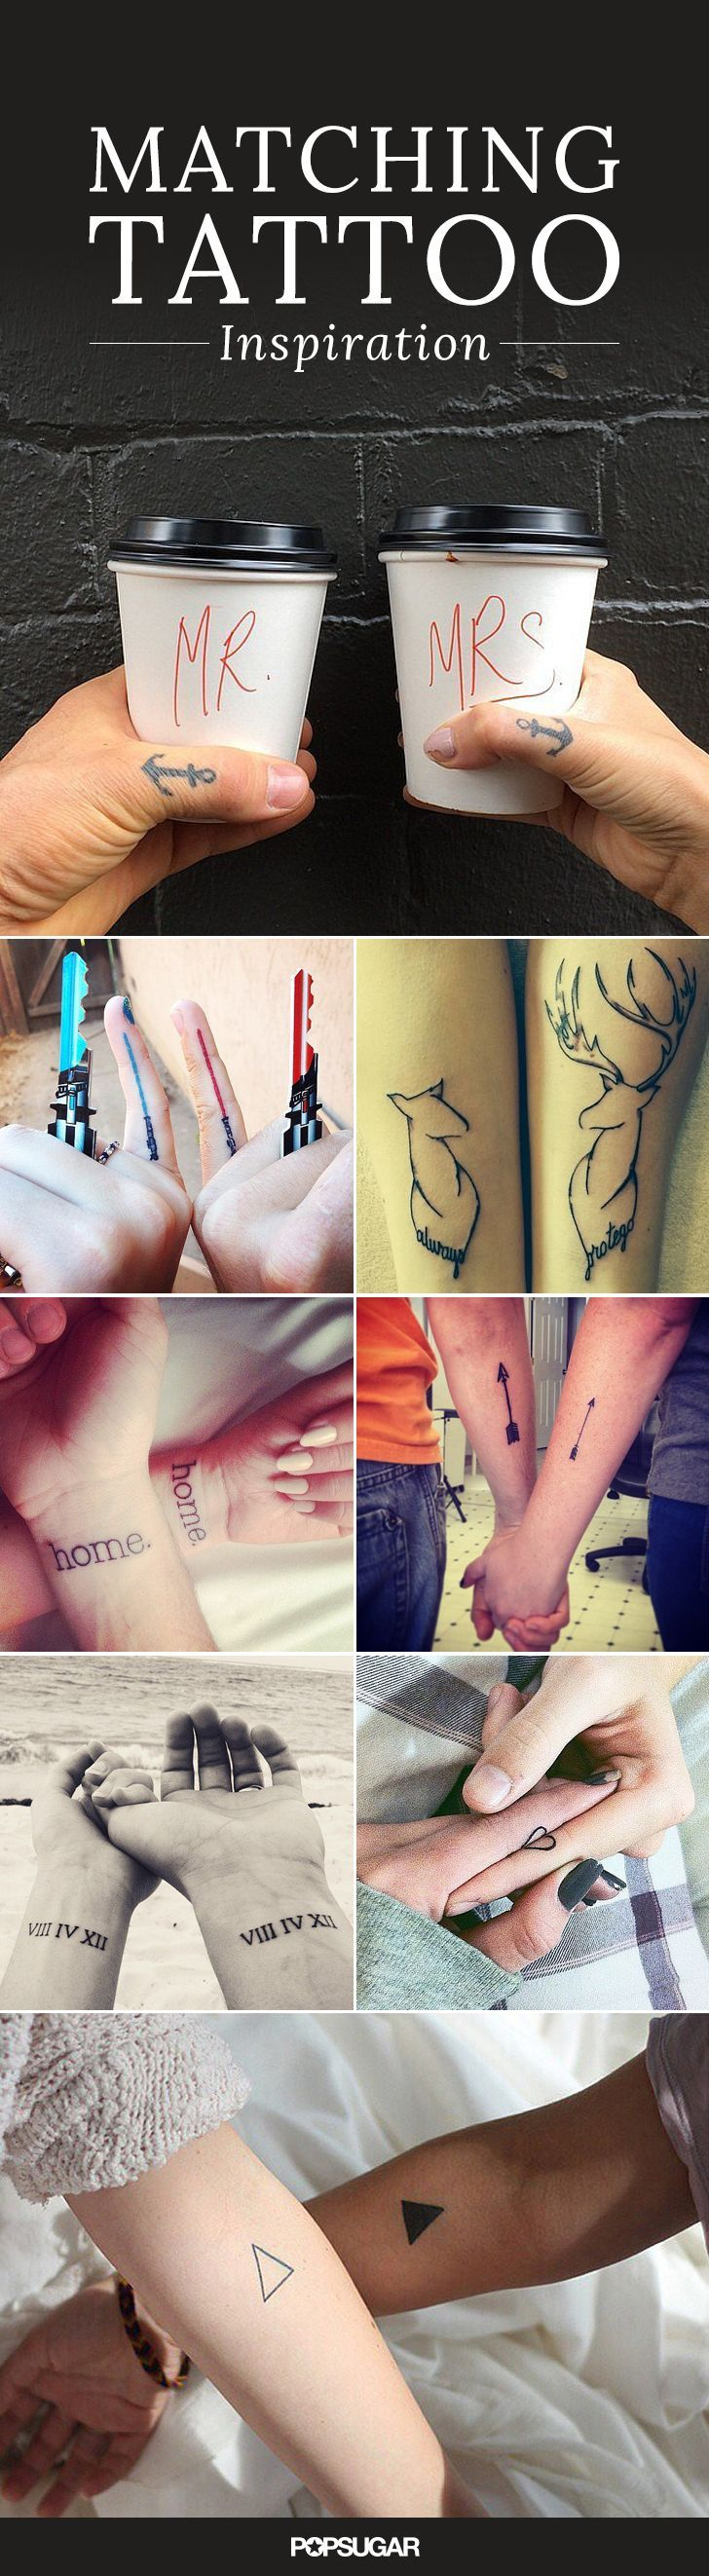 Here is some adorable body art that proves love is literally forever. We hope!